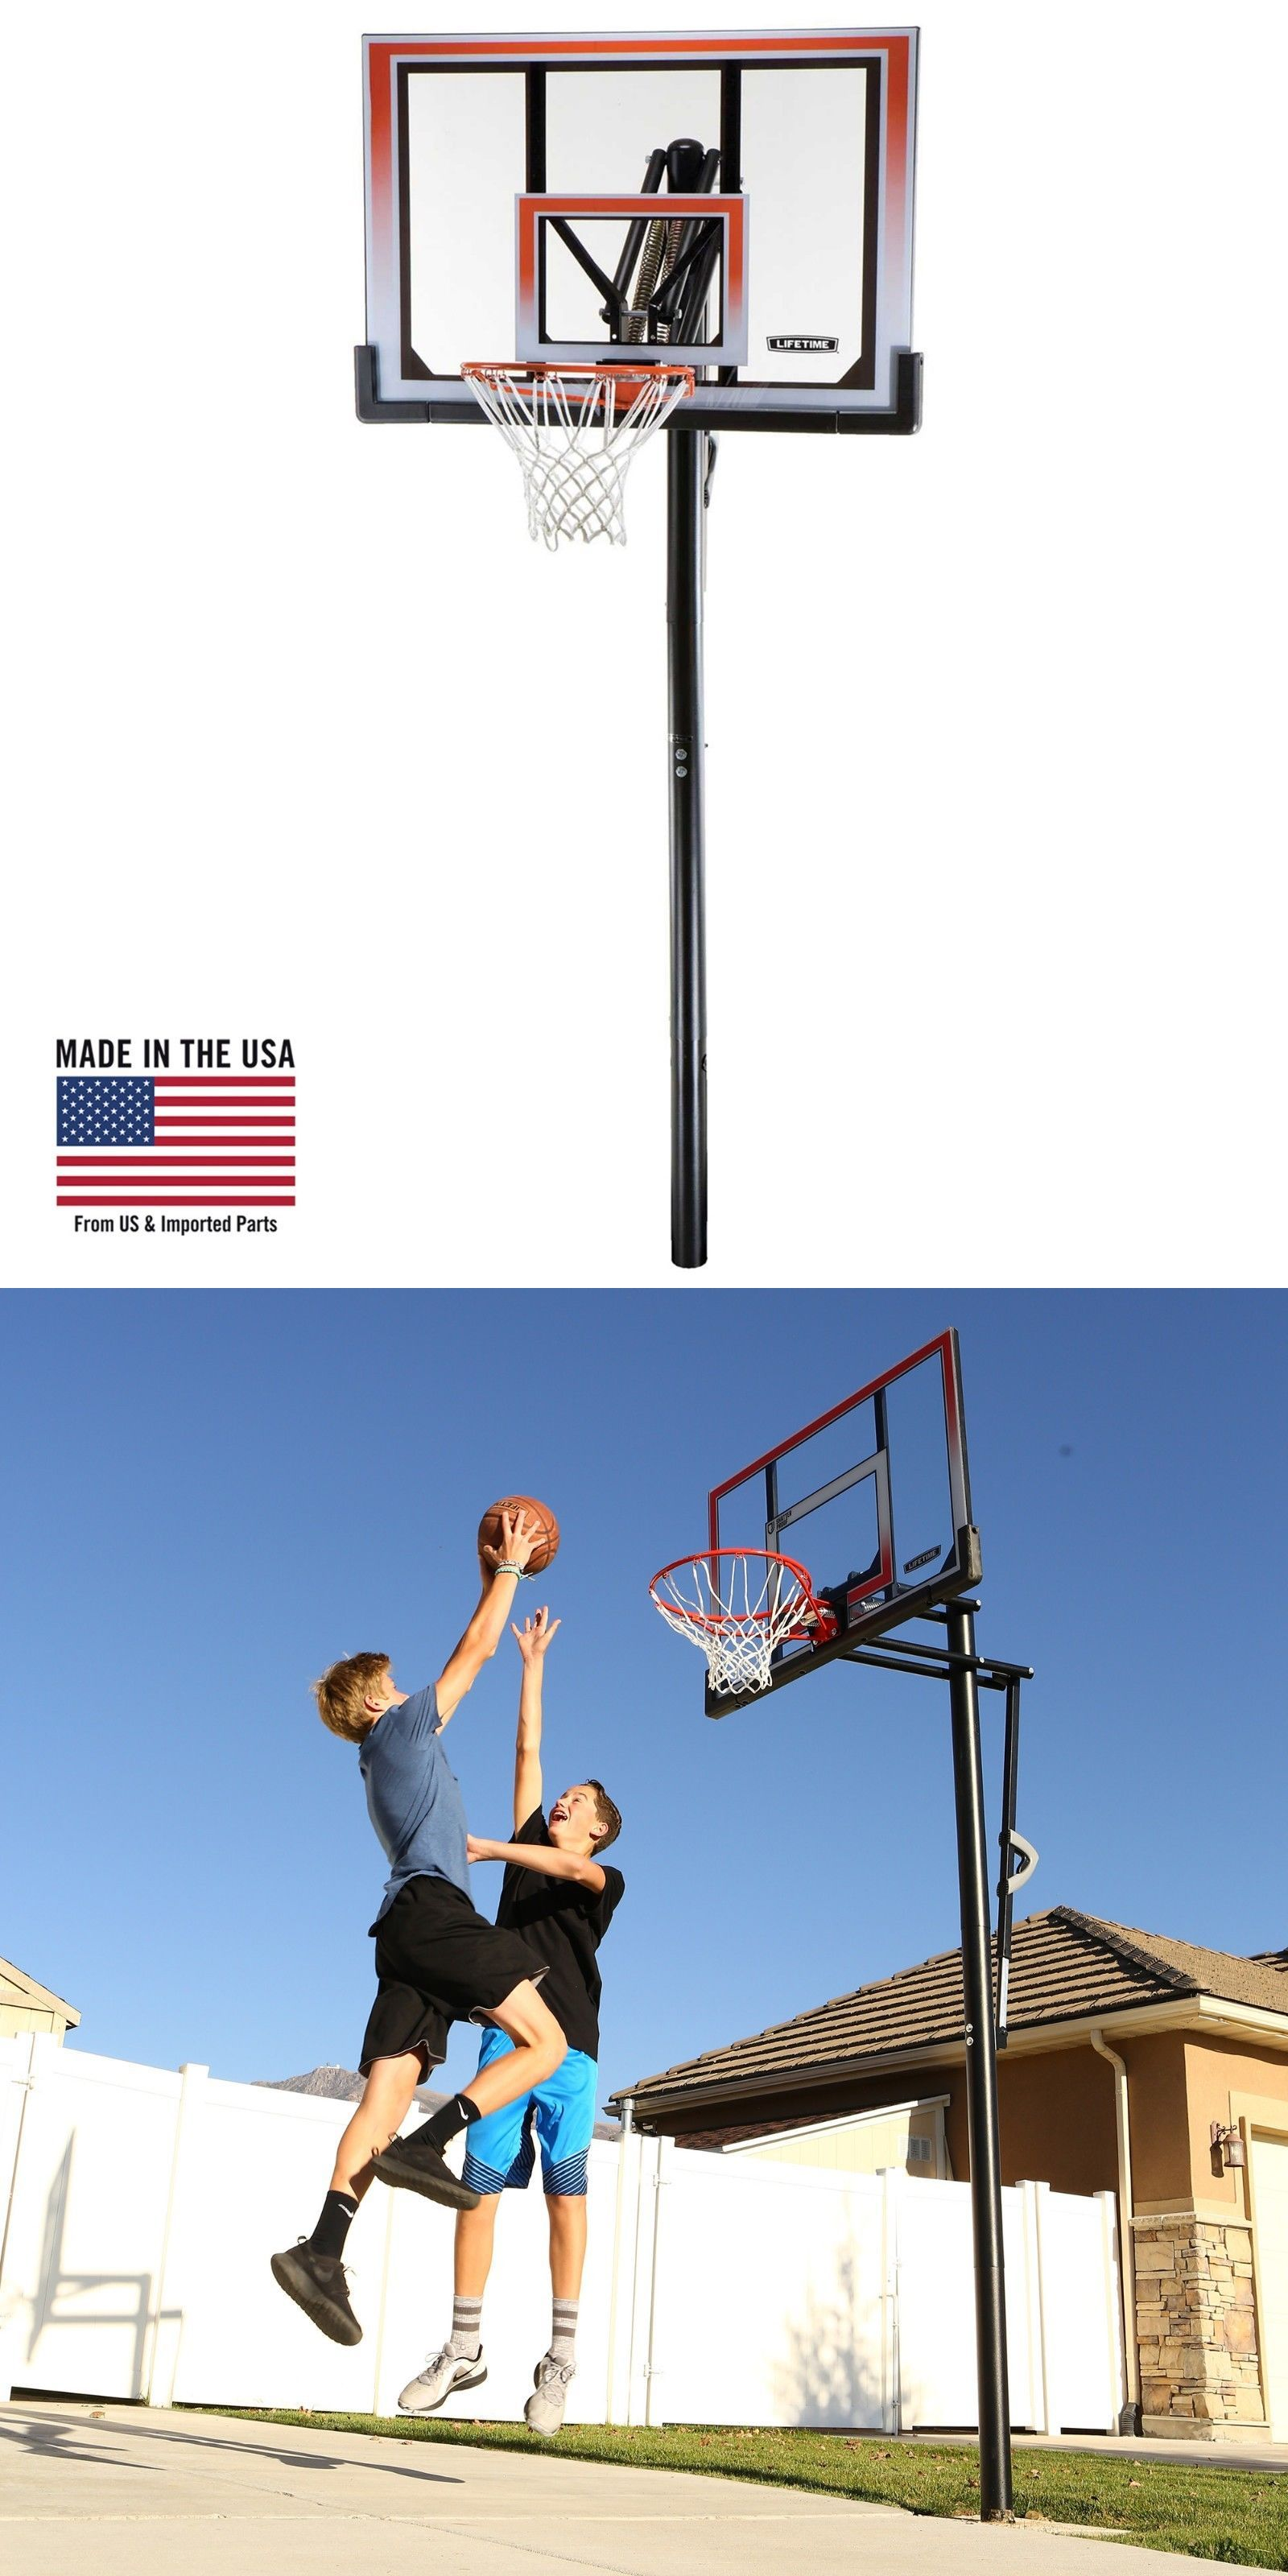 77825a1d39b8 Basketball 21194  Basketball Hoop Game Play Fun 50 Shatterproof In-Ground  One Hand Adjust